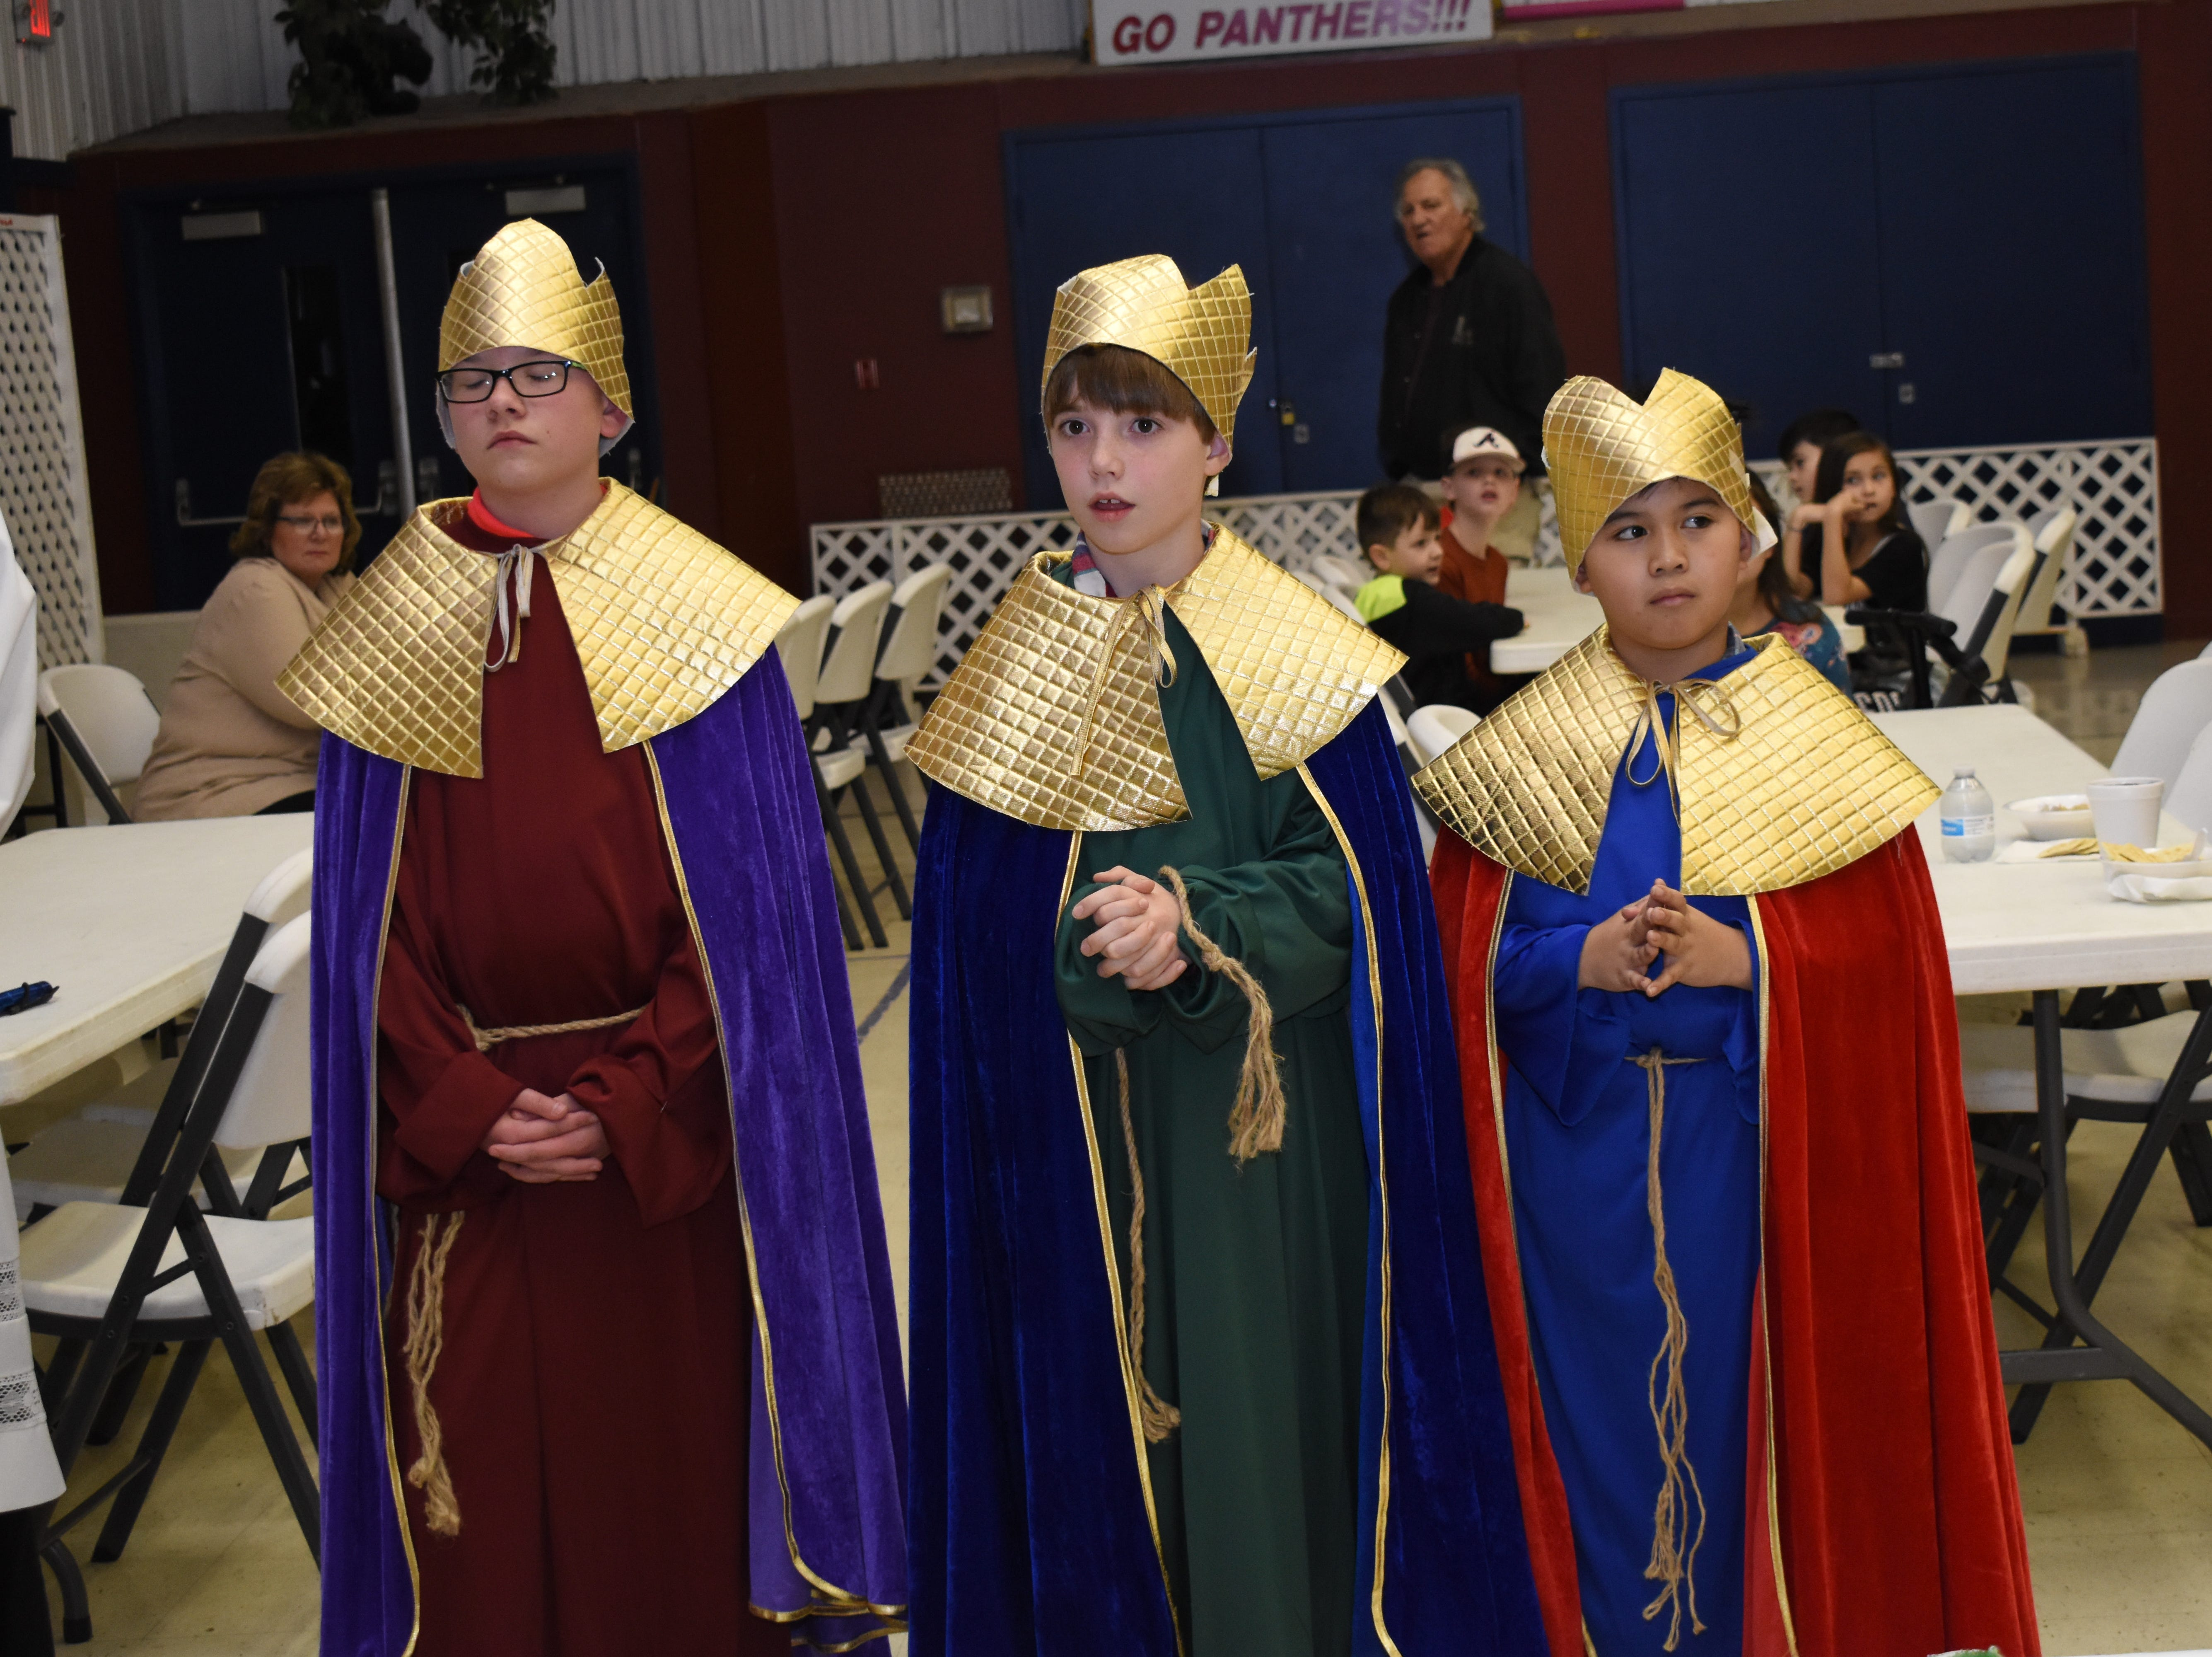 "St. Frances Cabrini Church celebrated the Epiphany, or end of the Christmas season with a mass Sunday, Jan. 6, 2019, and ushered in the Mardi Gras season. Epiphany celebrates Jesus Christ coming into the world and being visited by the Three Wise Men or Magi. Daren Kho, John Gary Hines and Eli Aymond portrayed the Three Wise Men who presented Jesus with gifts of gold, frankincense and myrrh after following the Star of Bethlehem to find him. The ""Burning of the Greens"" followed the mass. Christmas trees and wreaths were burned, symbolizing the light of Jesus coming into the world. Boy Scout Troop 6 helped light the greens on fire. A dinner of Queen's soup was served. The soup was created to honor the queen of the Mardi Gras balls. and Father Chad Partain blessed the King Cakes. King Cakes are served before Lent to celebrate the Mardi Gras season. The cakes are called King Cakes because of Three Wise Men. Local Mardi Gras Krewes were recognized during the celebration. Mardi Gras is March 5."